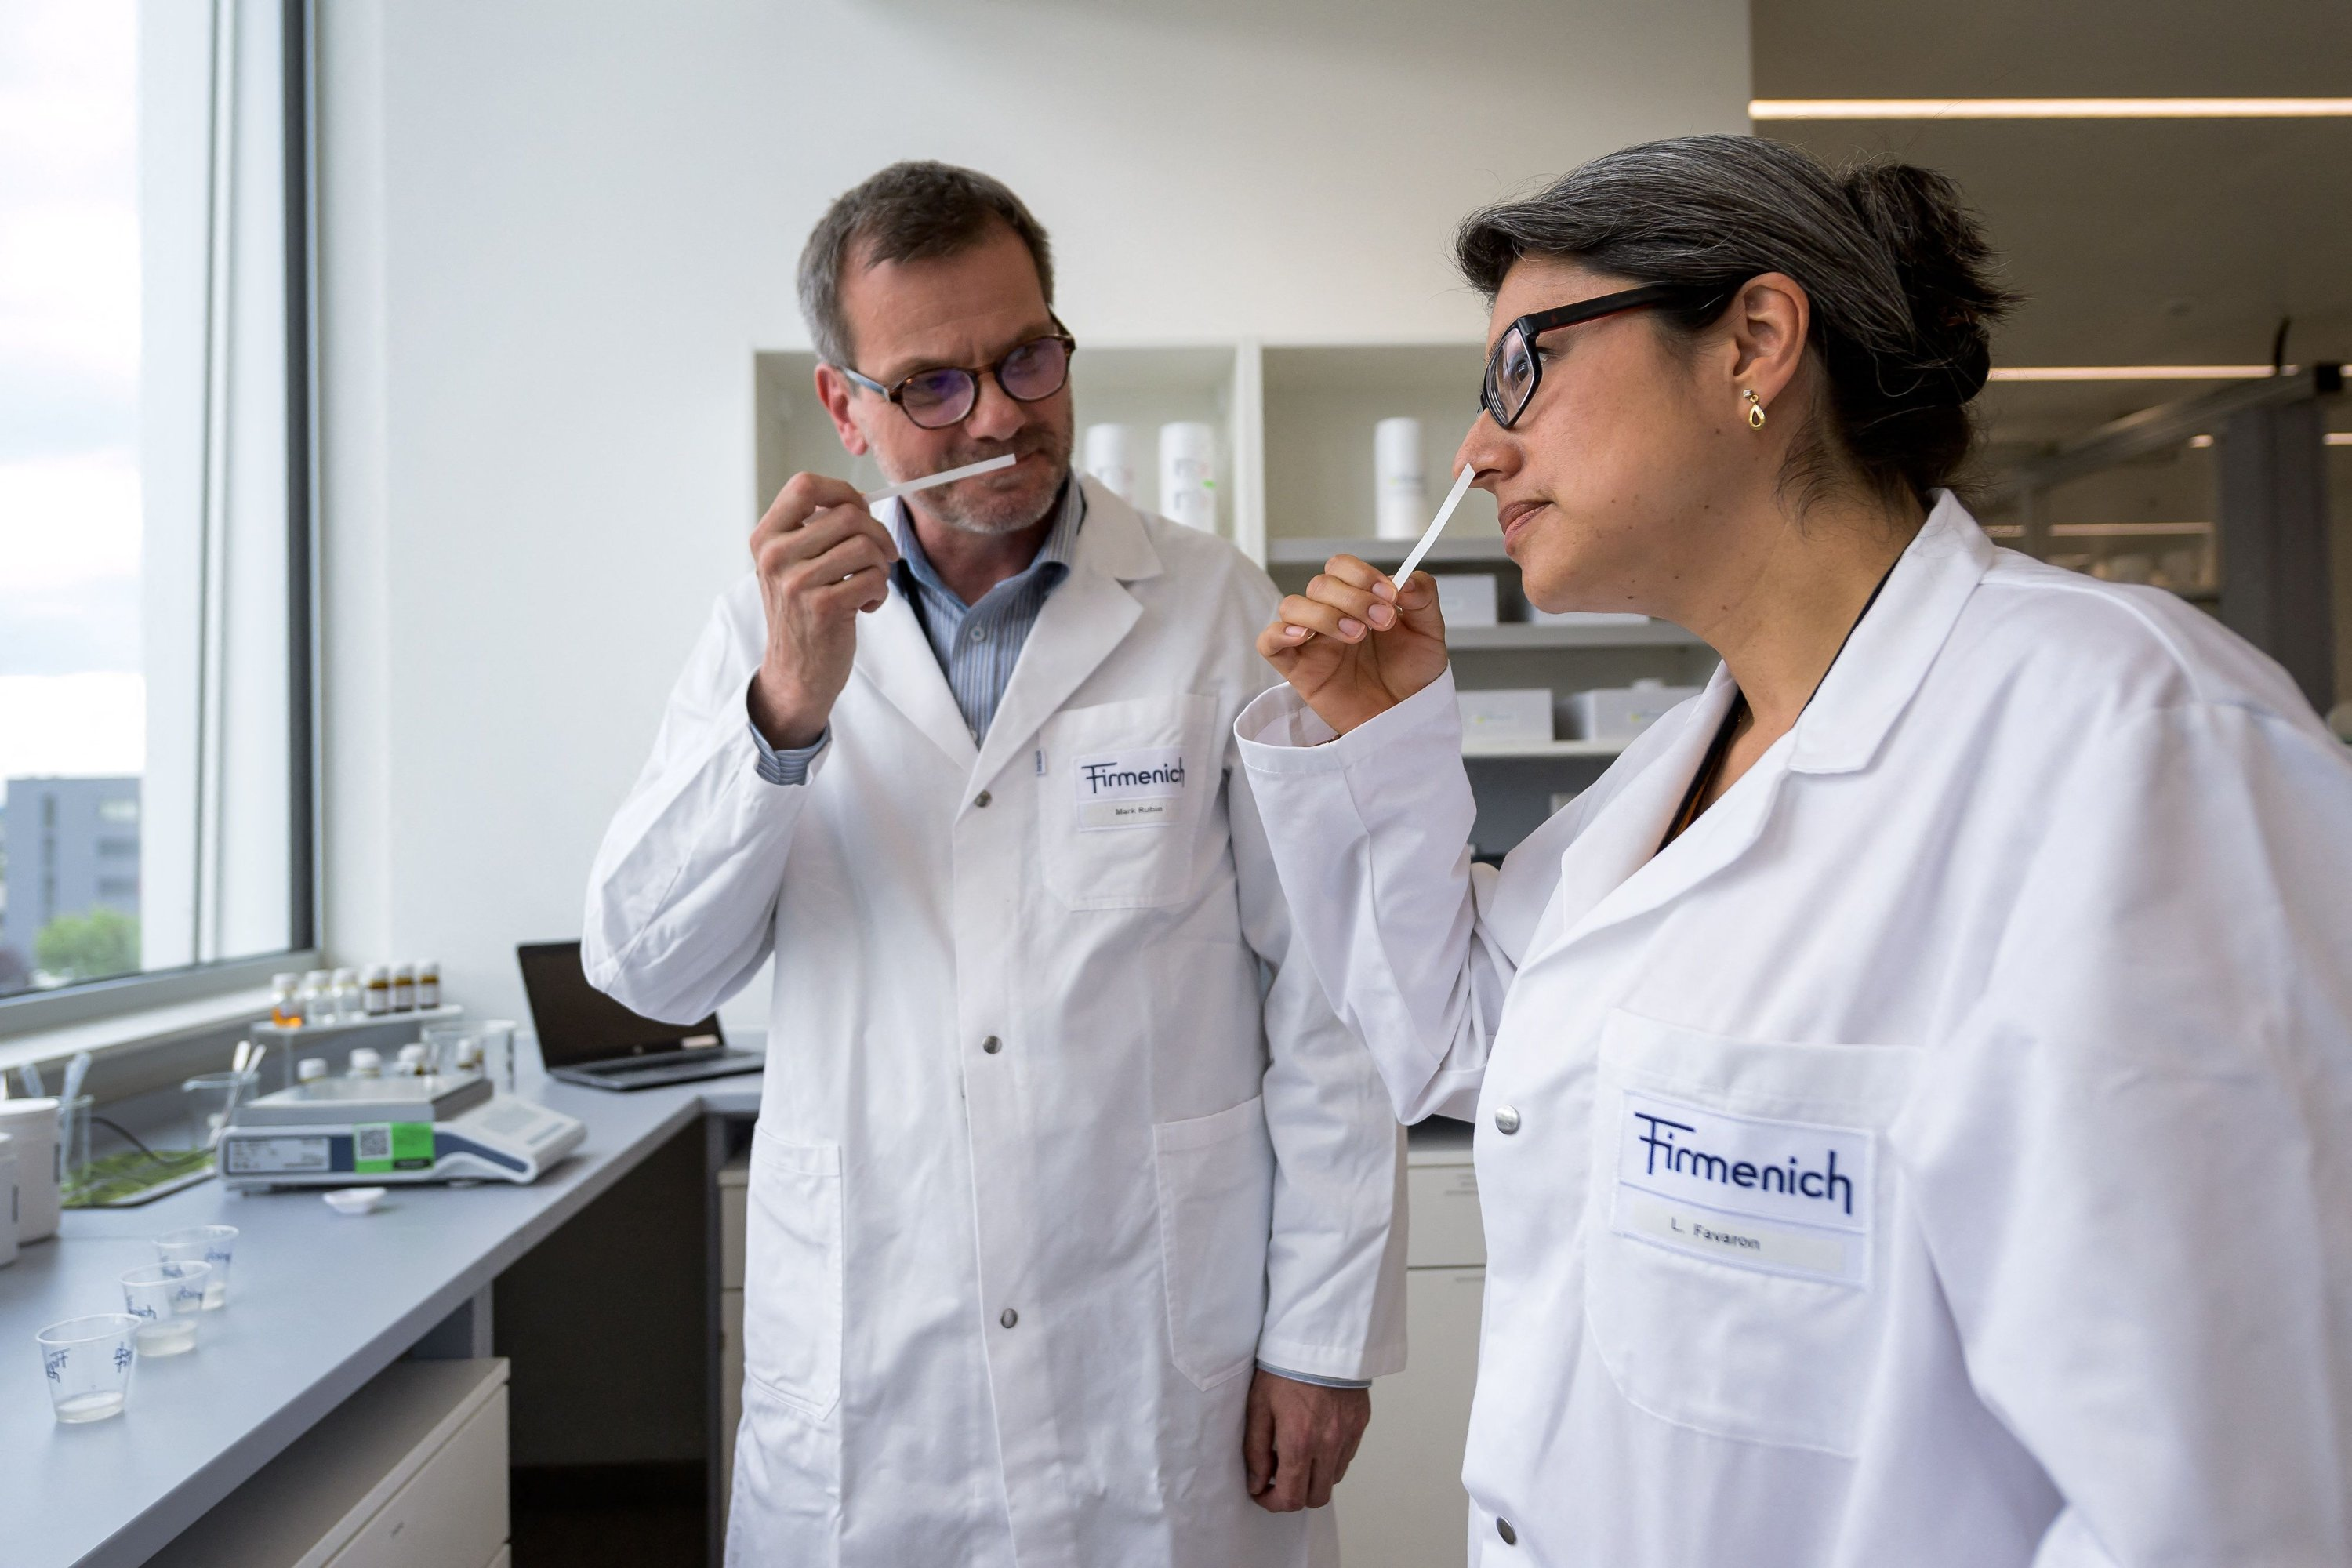 Flavorists Liliana Favaron (R) and Mark Rubin (L) smell a combination of fragrances at the headquarters of Swiss group Firmenich, in Satigny near Geneva, Switzerland, on June 30, 2021. (AFP Photo)